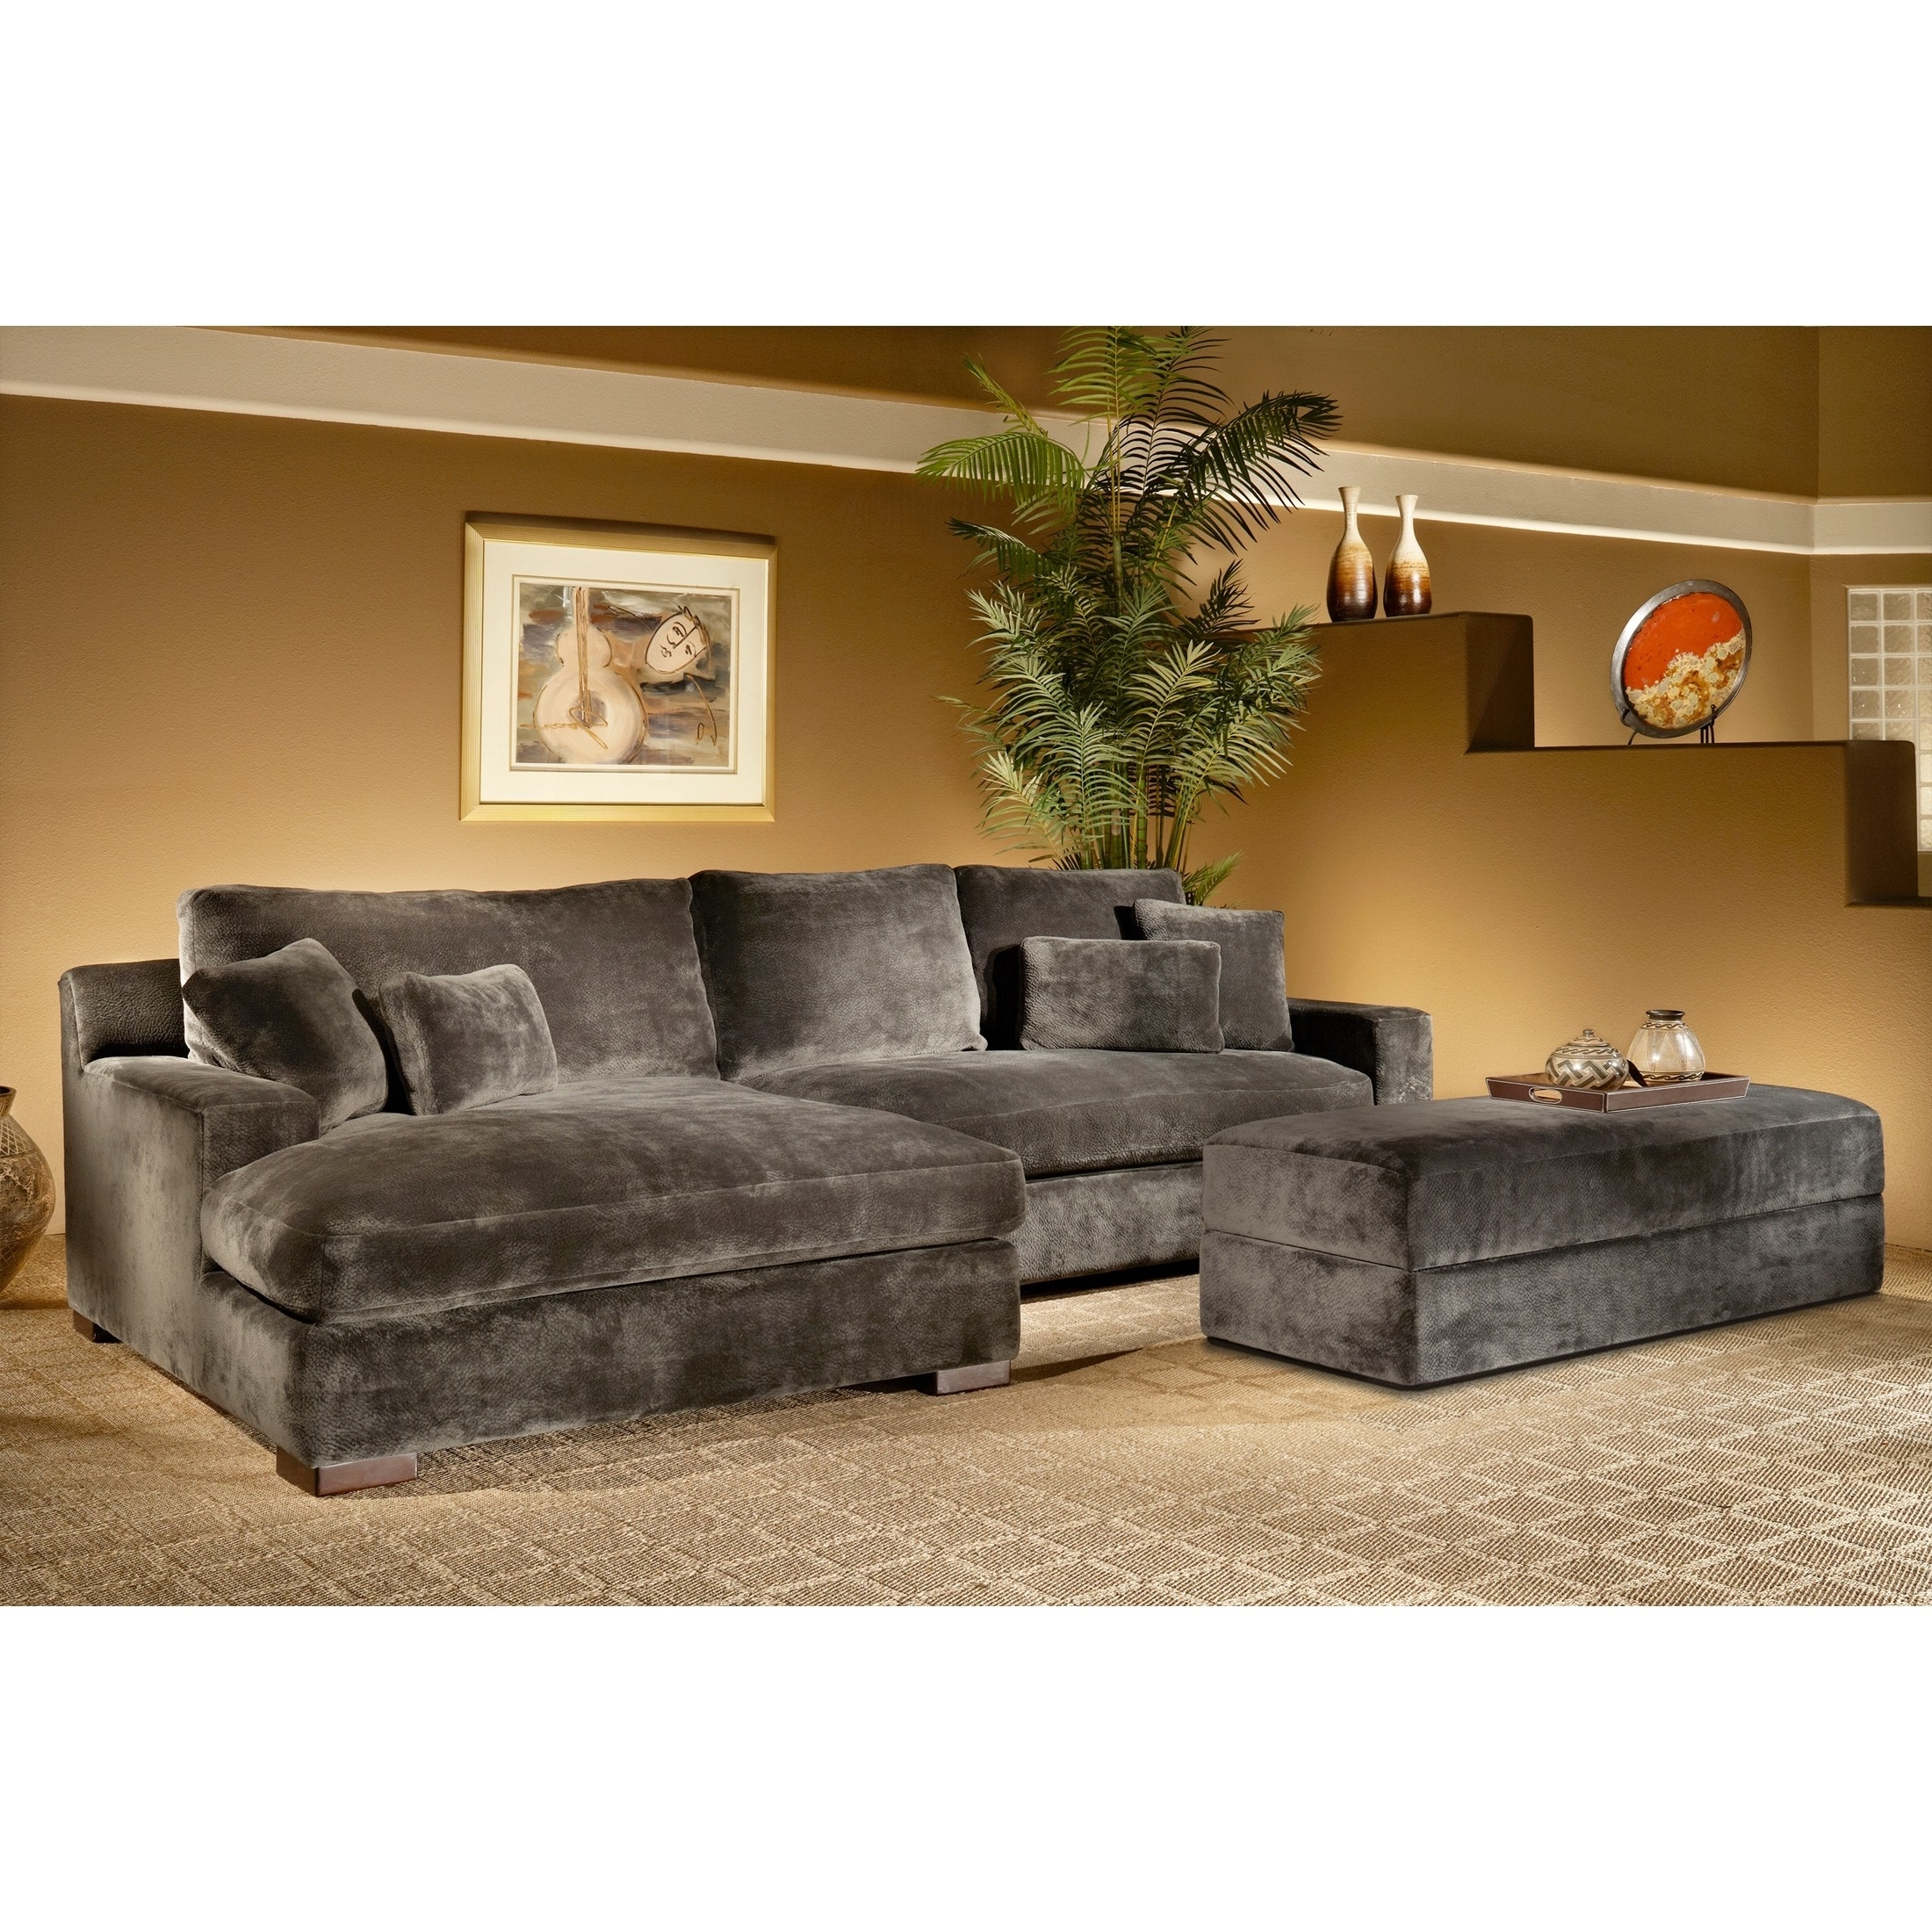 Most Recent Overstuffed Sofas And Chairs Pertaining To The Doris 3 Piece Smoke Sectional Sofa With Storage Ottoman Is (View 4 of 15)